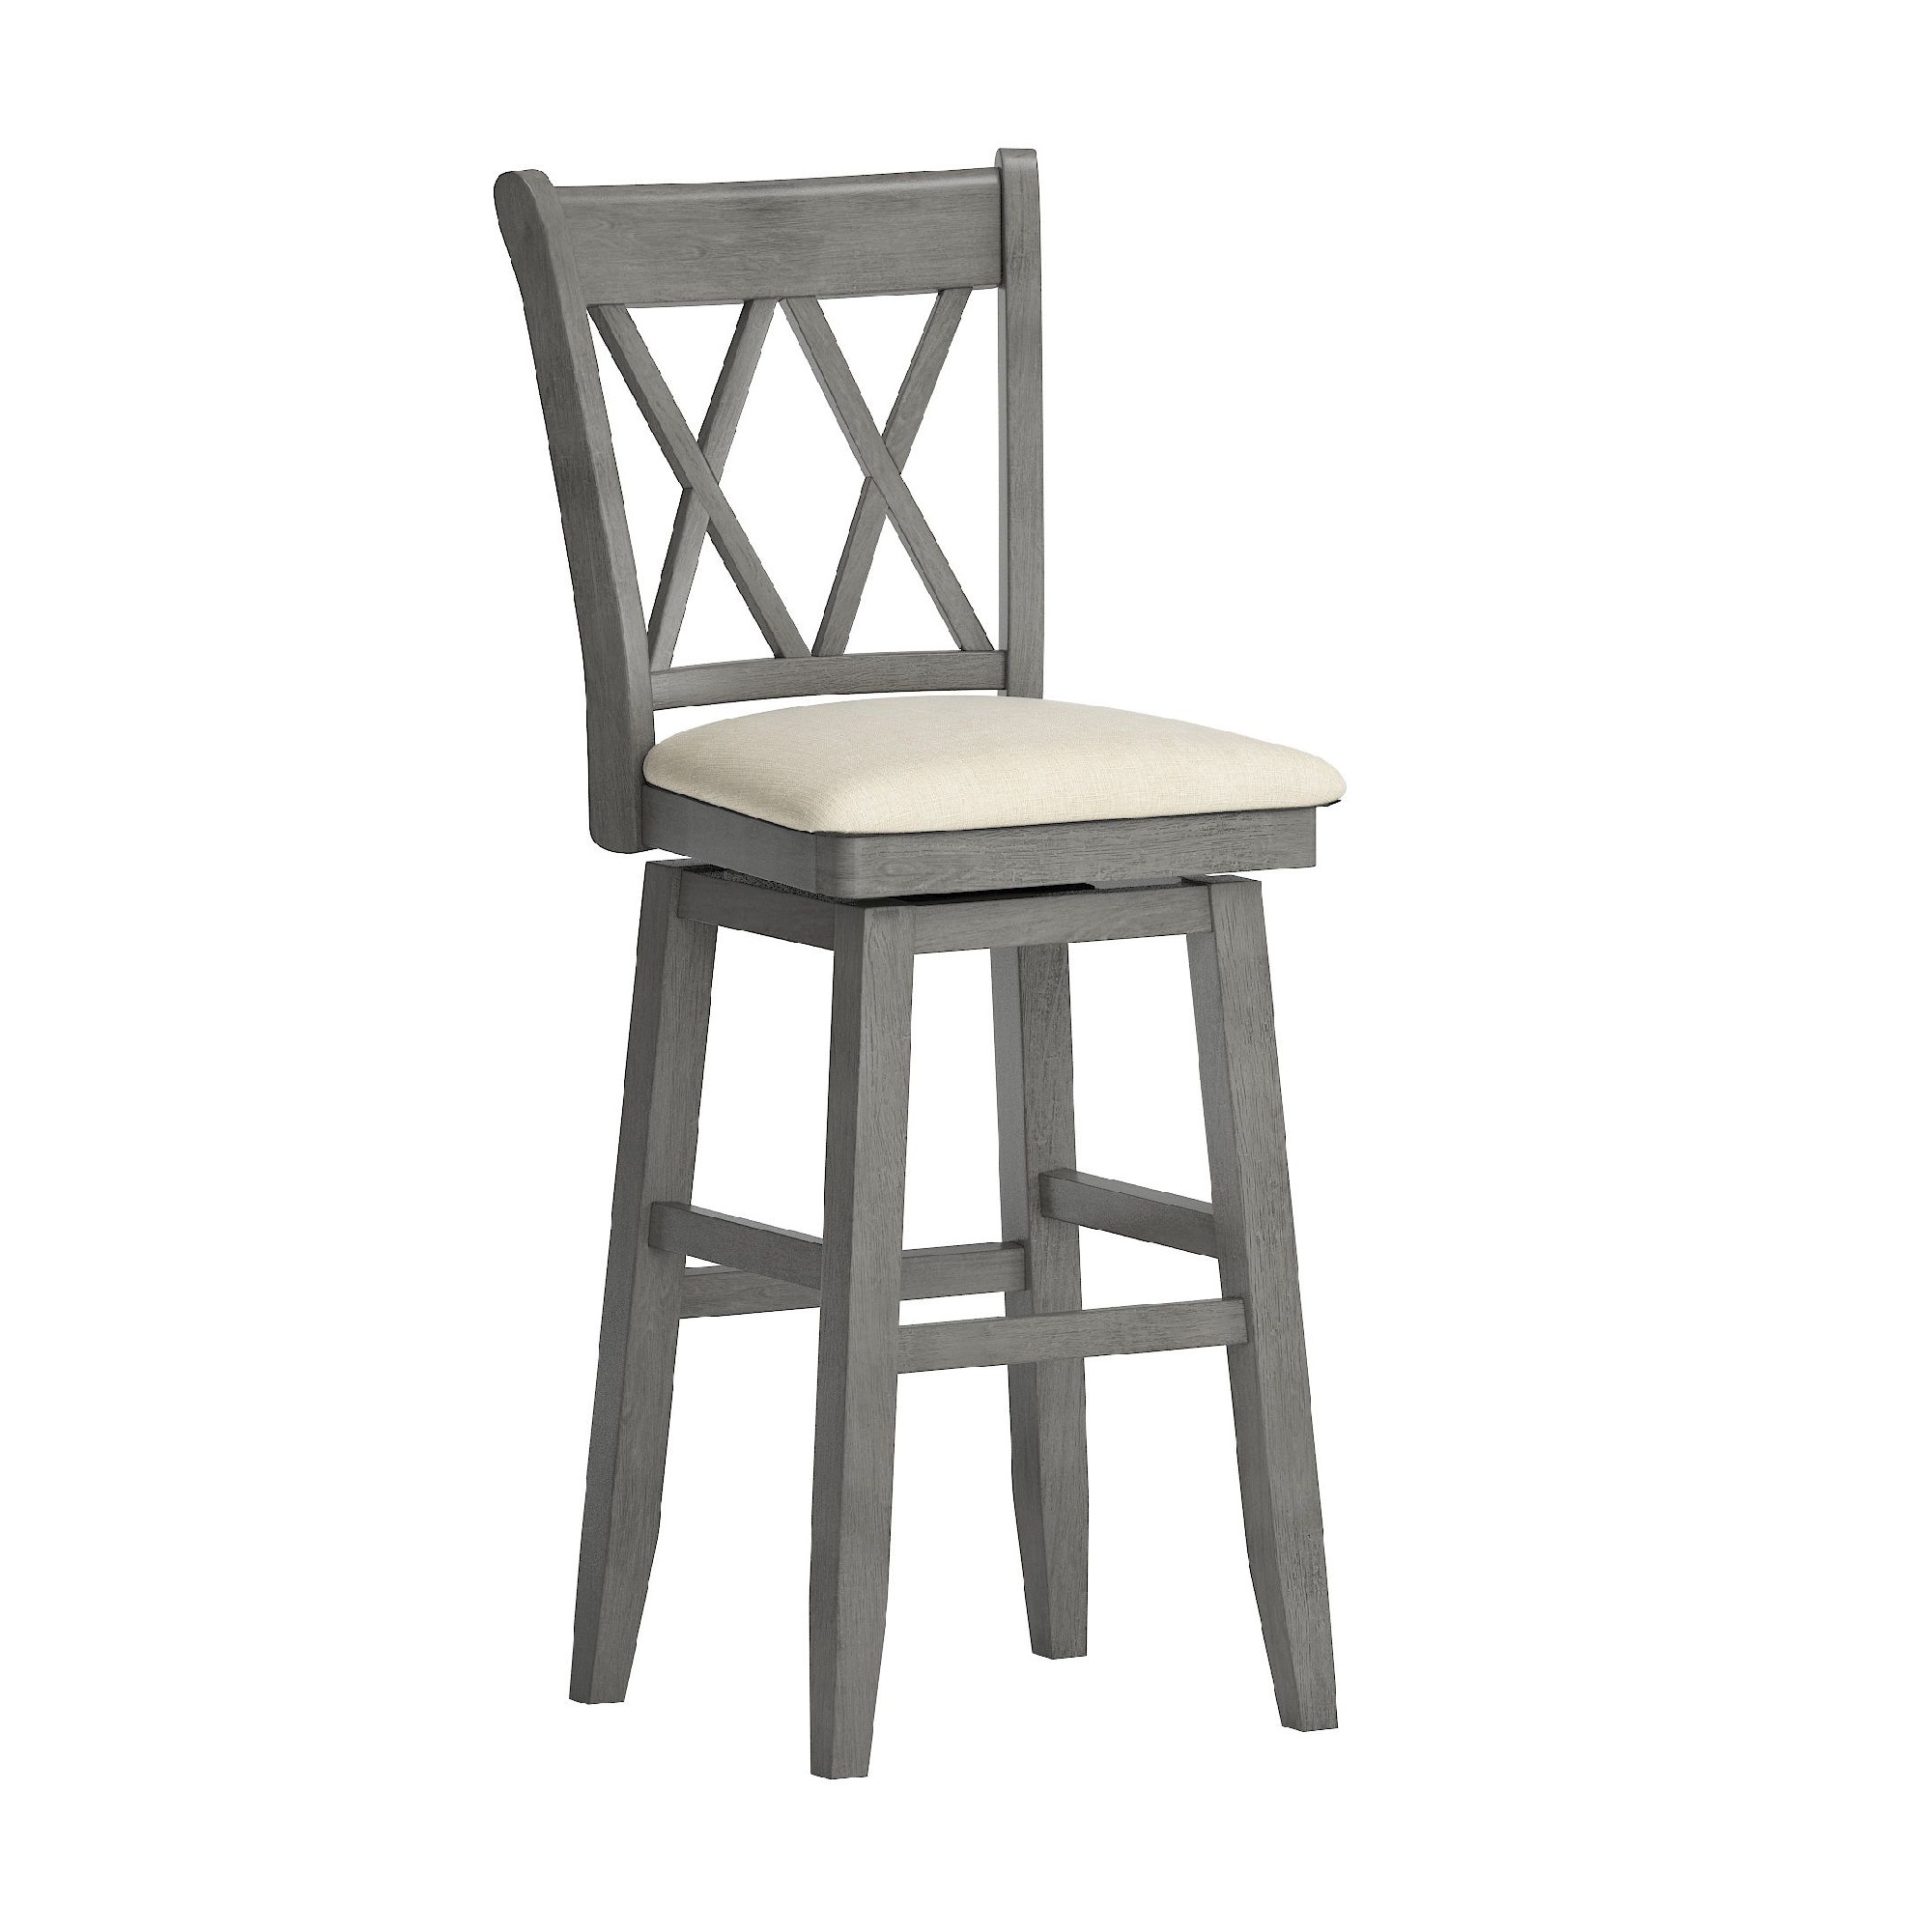 Shop Eleanor Double X Back Wood Swivel Bar Stool By Inspire Q Classic On Sale Overstock 20457171